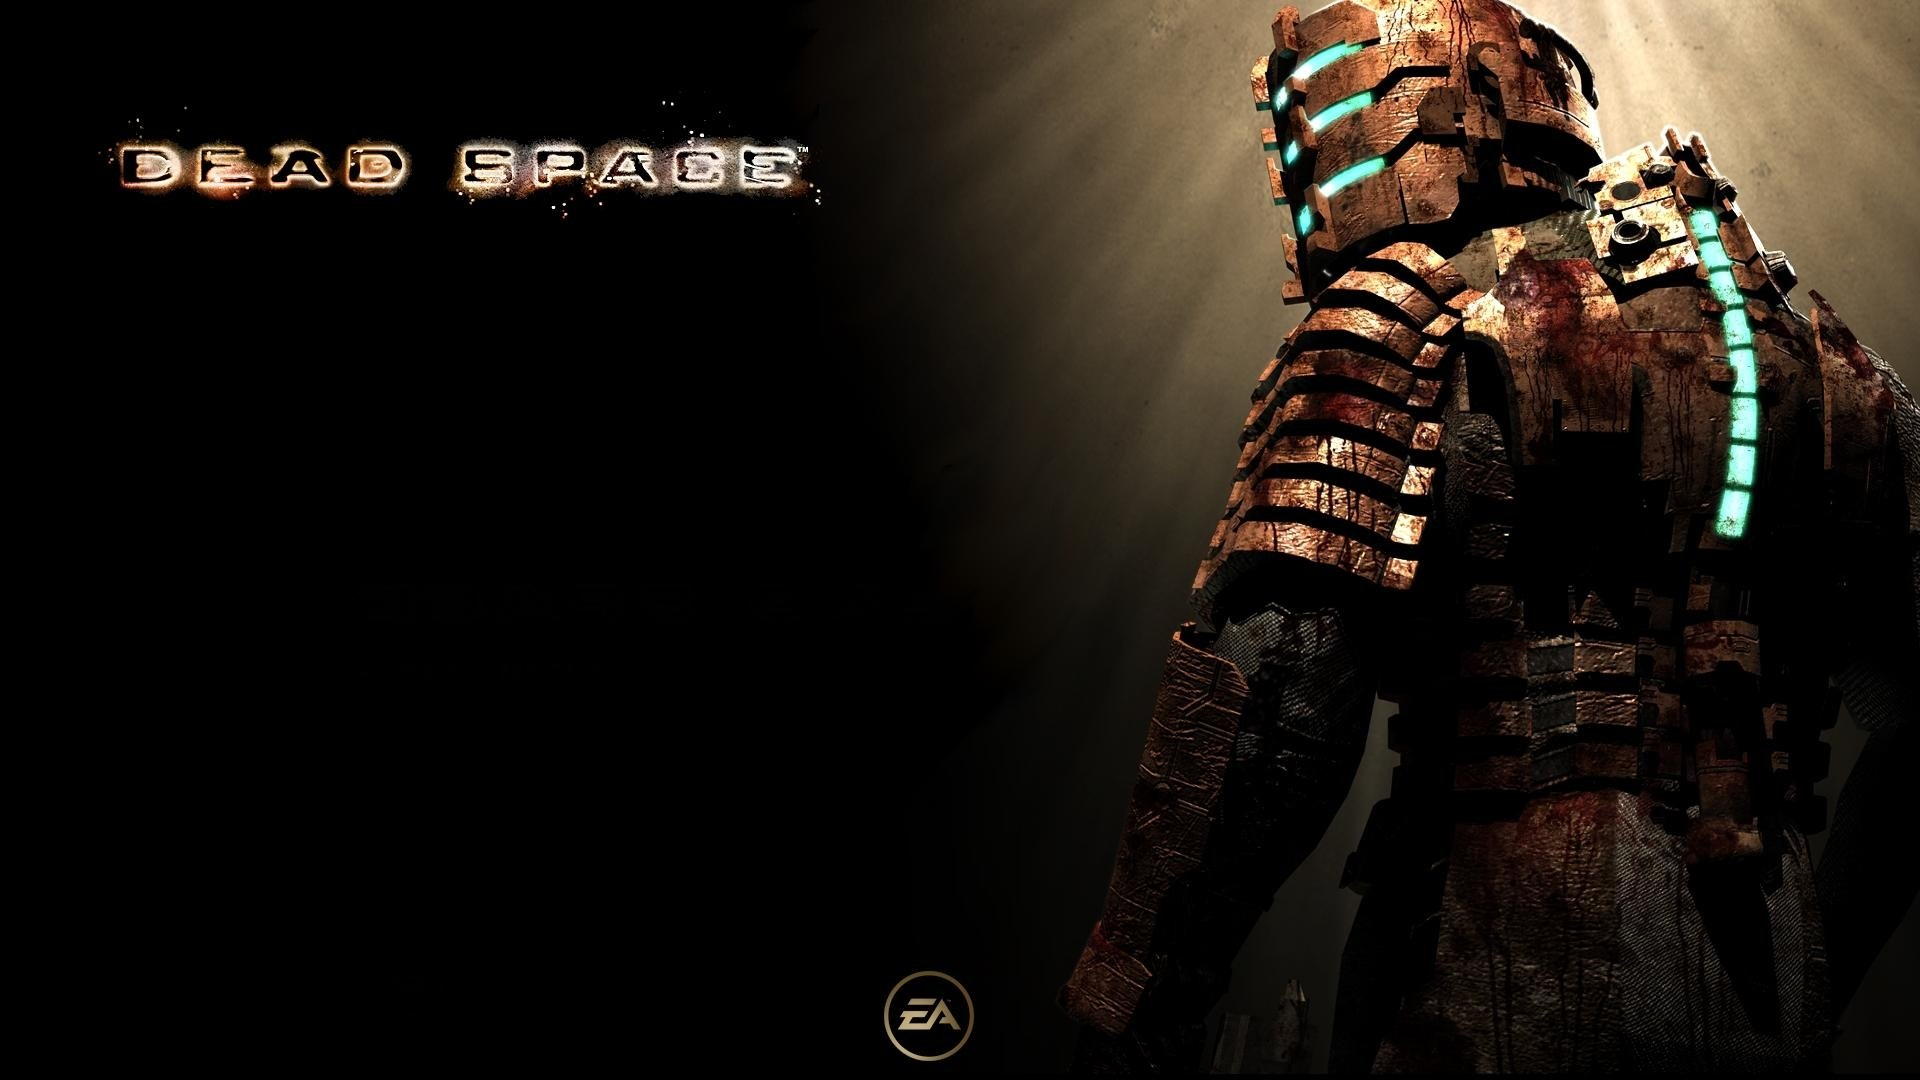 251 Dead Space HD Wallpapers Backgrounds Wallpaper Abyss